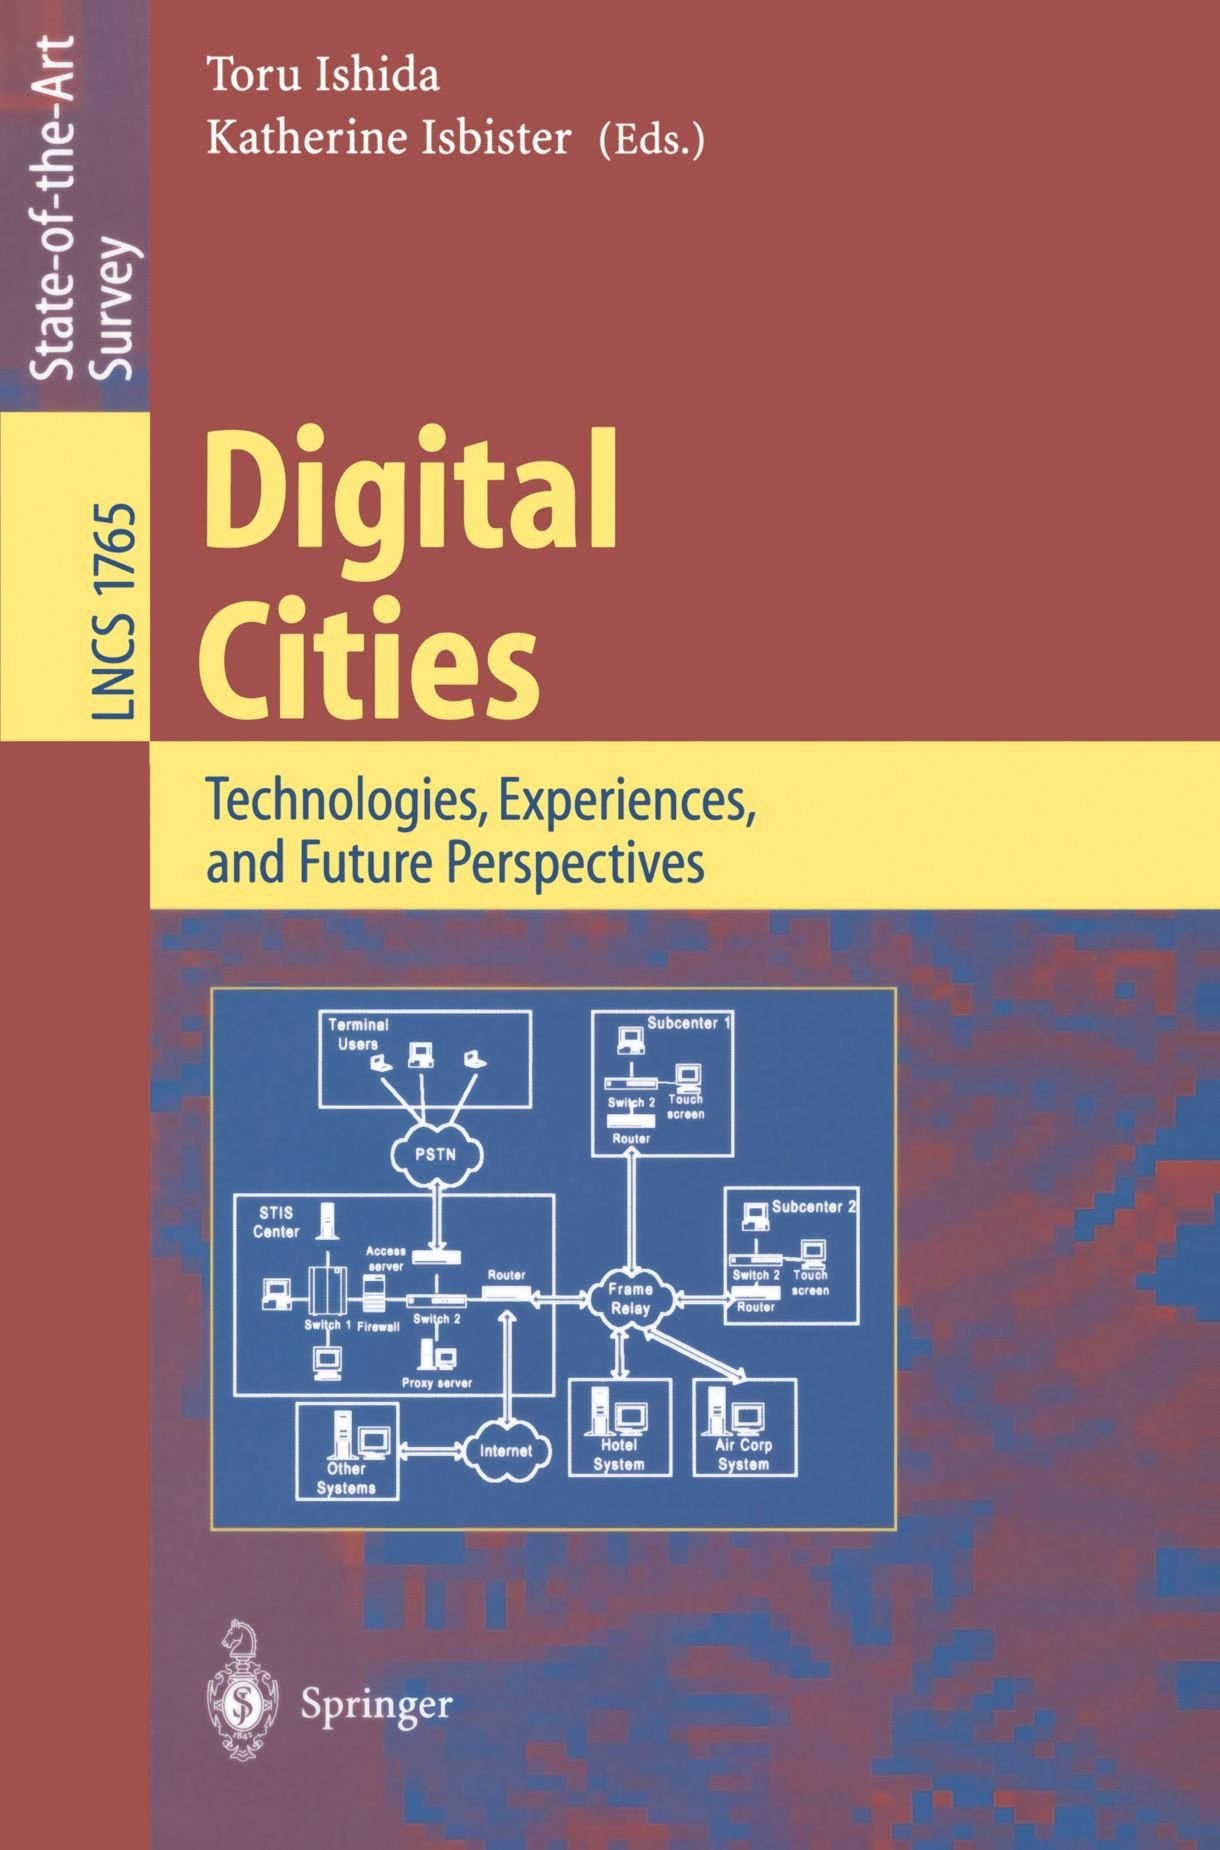 Digital Cities: Technologies, Experiences, and Future Perspectives (Lecture Notes in Computer Science)